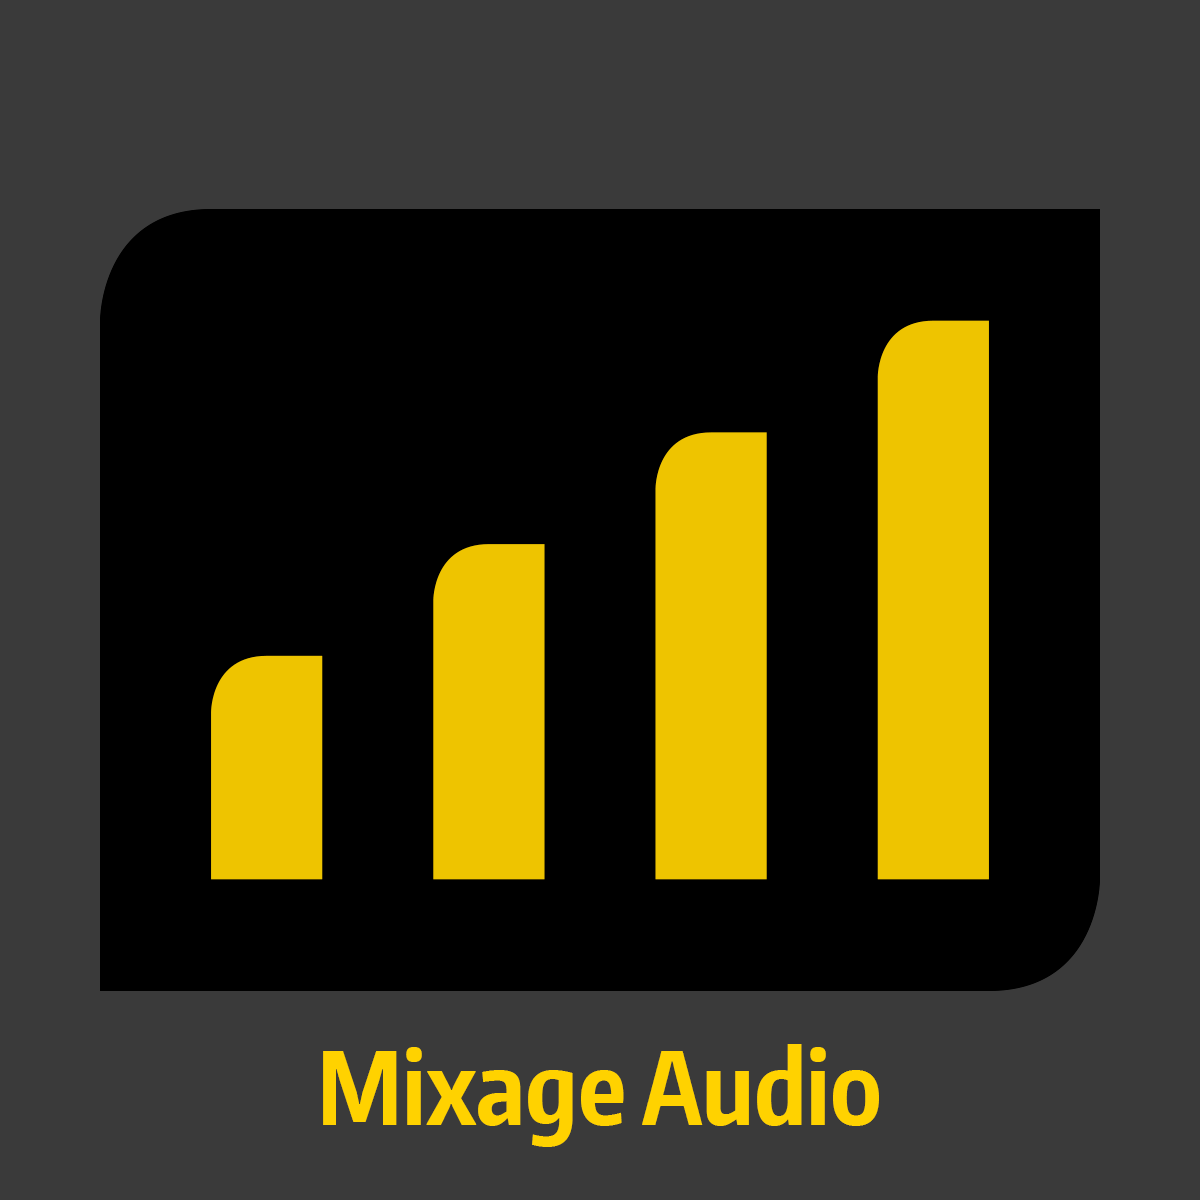 Formation à la carte - Mixage Audio